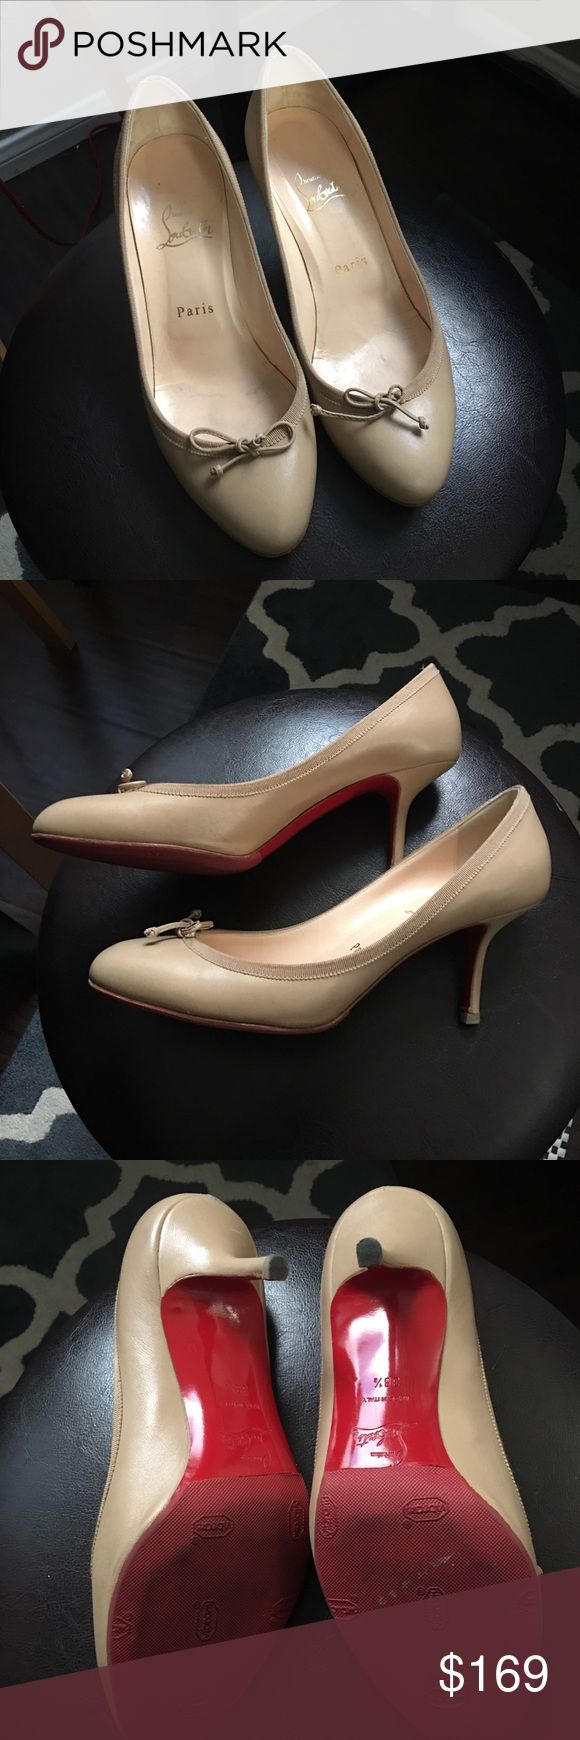 Christian Louboutin Nude Ballet Pumps Classic Ballet with Kitten Heel Christian Louboutin Shoes Heels